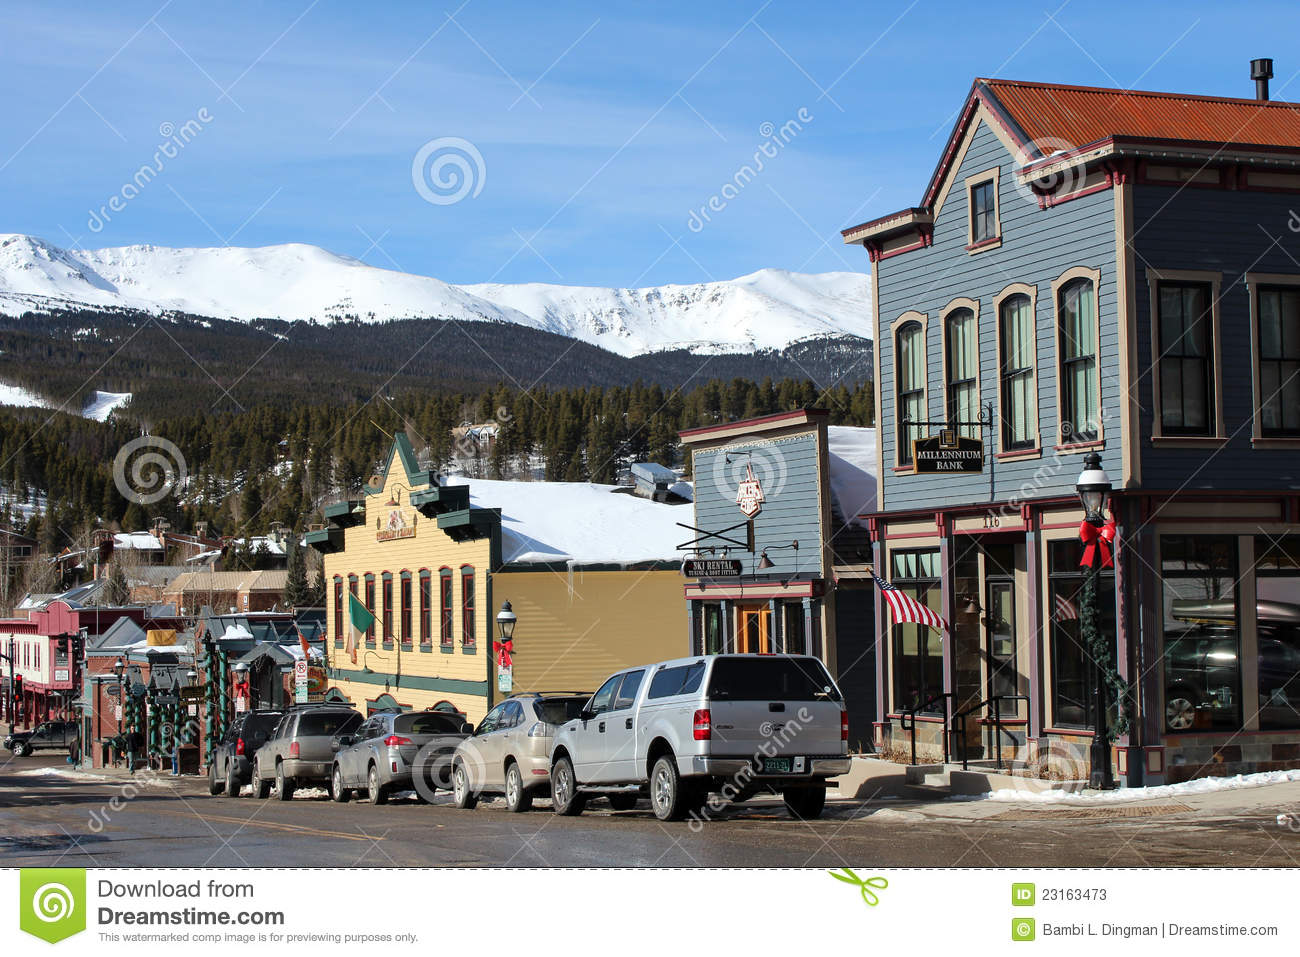 western united states map with Stock Photos Downtown Breckenridge Colorado Image23163473 on Bonners ferry id usa 13217 further Leigh High School as well Honduras Catches 5 Syrians With Stolen Greek Passports Headed To U S A further File Pendoreillerivermap besides McMurdo Sound.